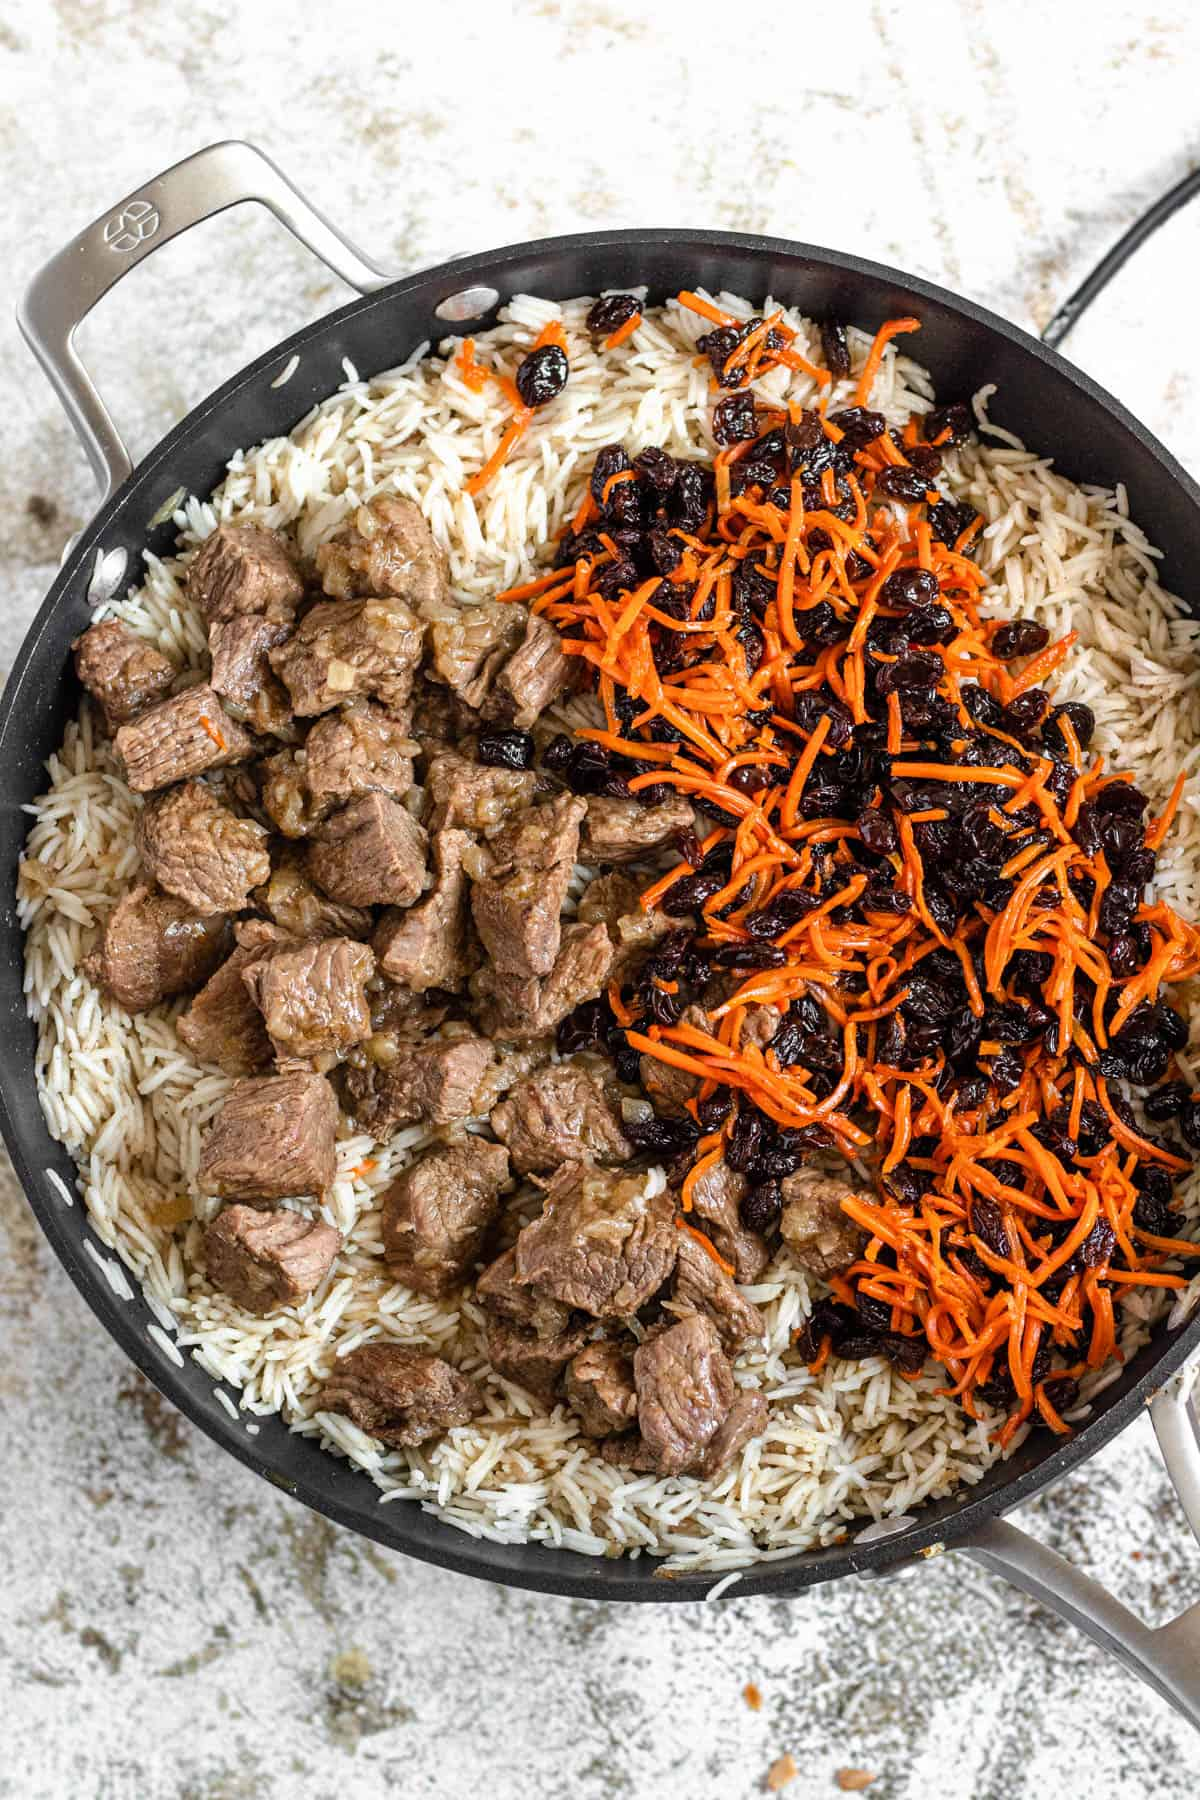 Large pan with cooked rice on the bottom and lamb meat, carrots, and raisins on top